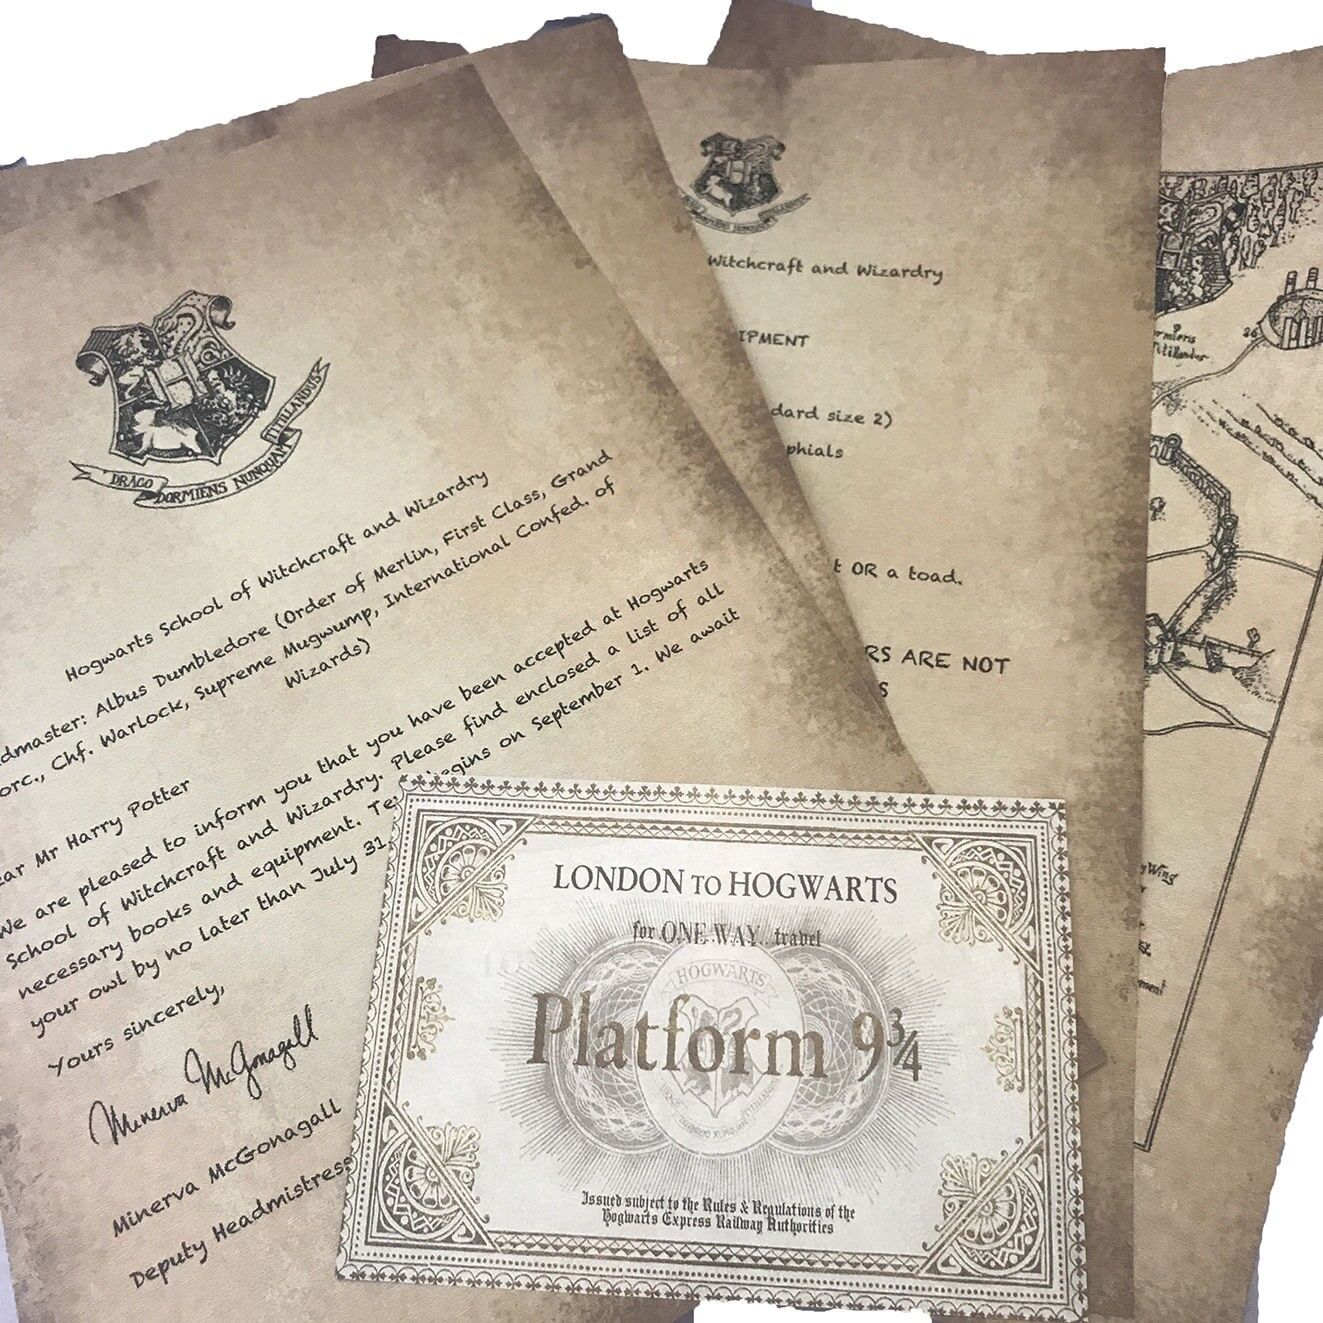 HARRY POTTER ACCEPTANCE HOGWARTS LETTER CUSTOMIZED In